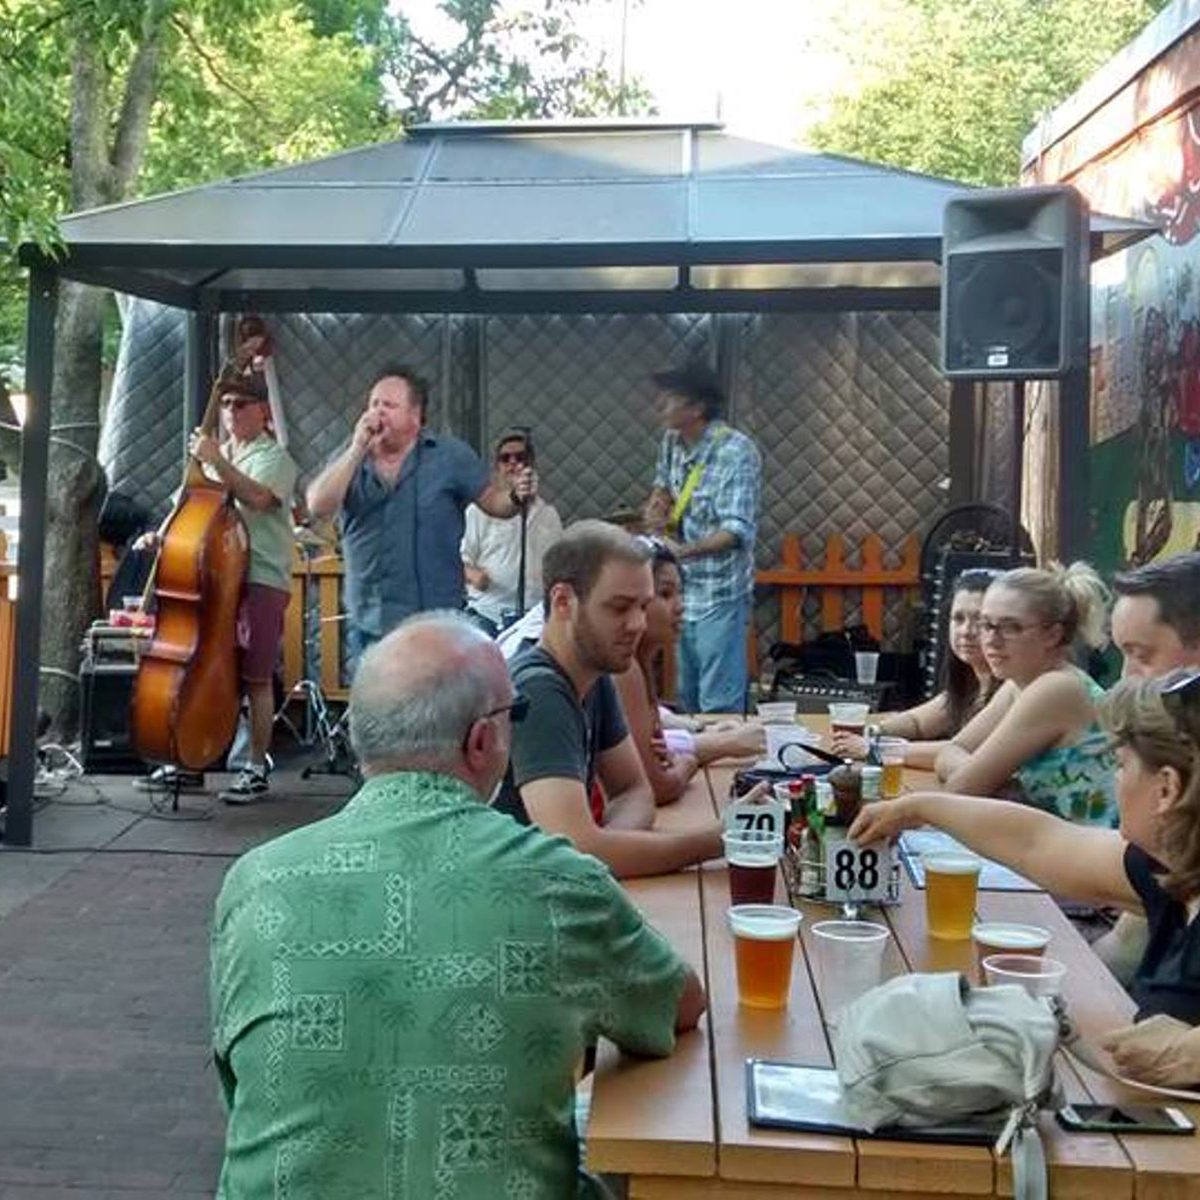 People enjoying live music and drinks at Westover Market's beer garden